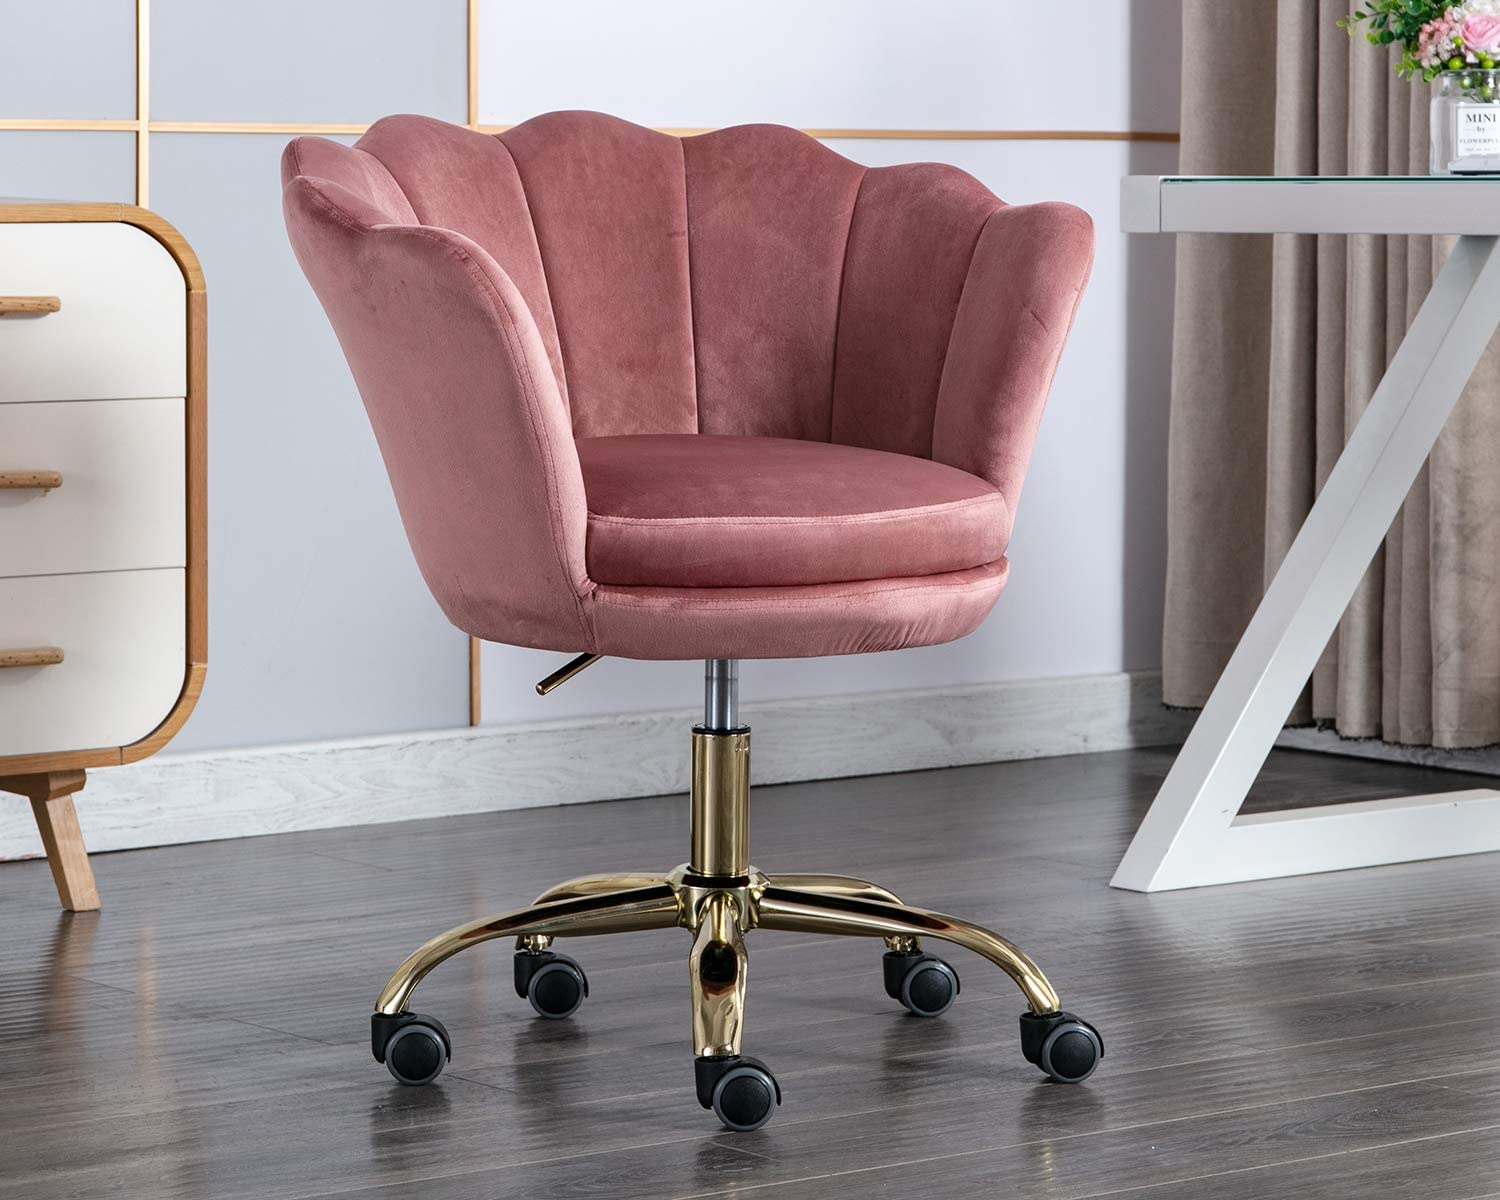 Kmax Office Desk Chair, Velvet Makeup Arm Chair Gold Base, Pink